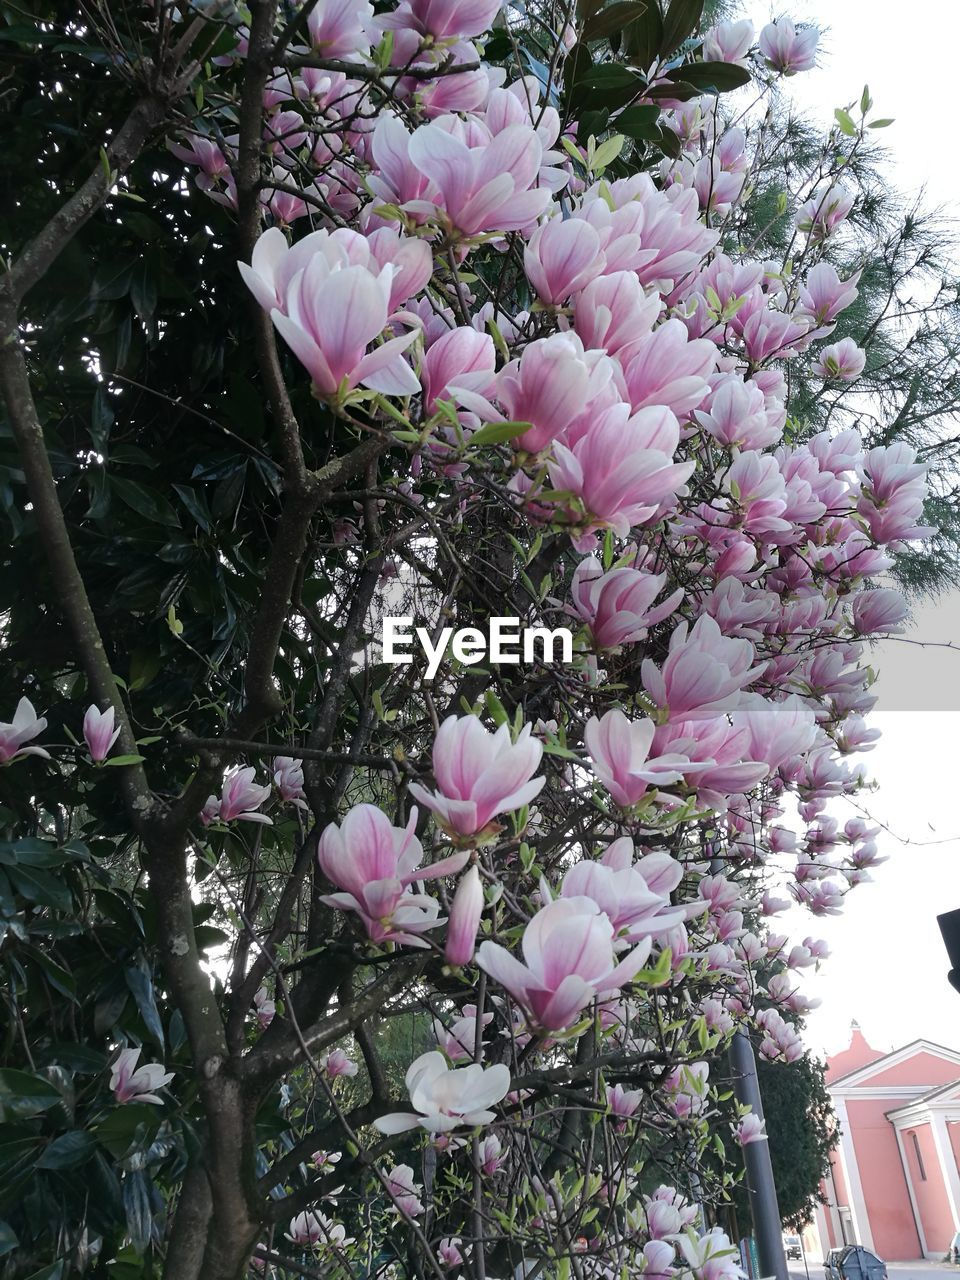 flower, growth, pink color, blossom, nature, no people, fragility, beauty in nature, tree, freshness, day, outdoors, close-up